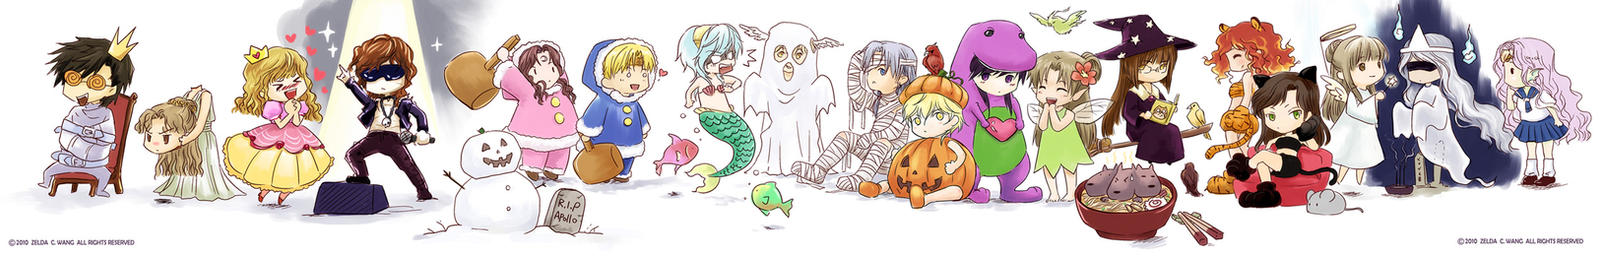 MYth: Trick or Treat line-up by zeldacw